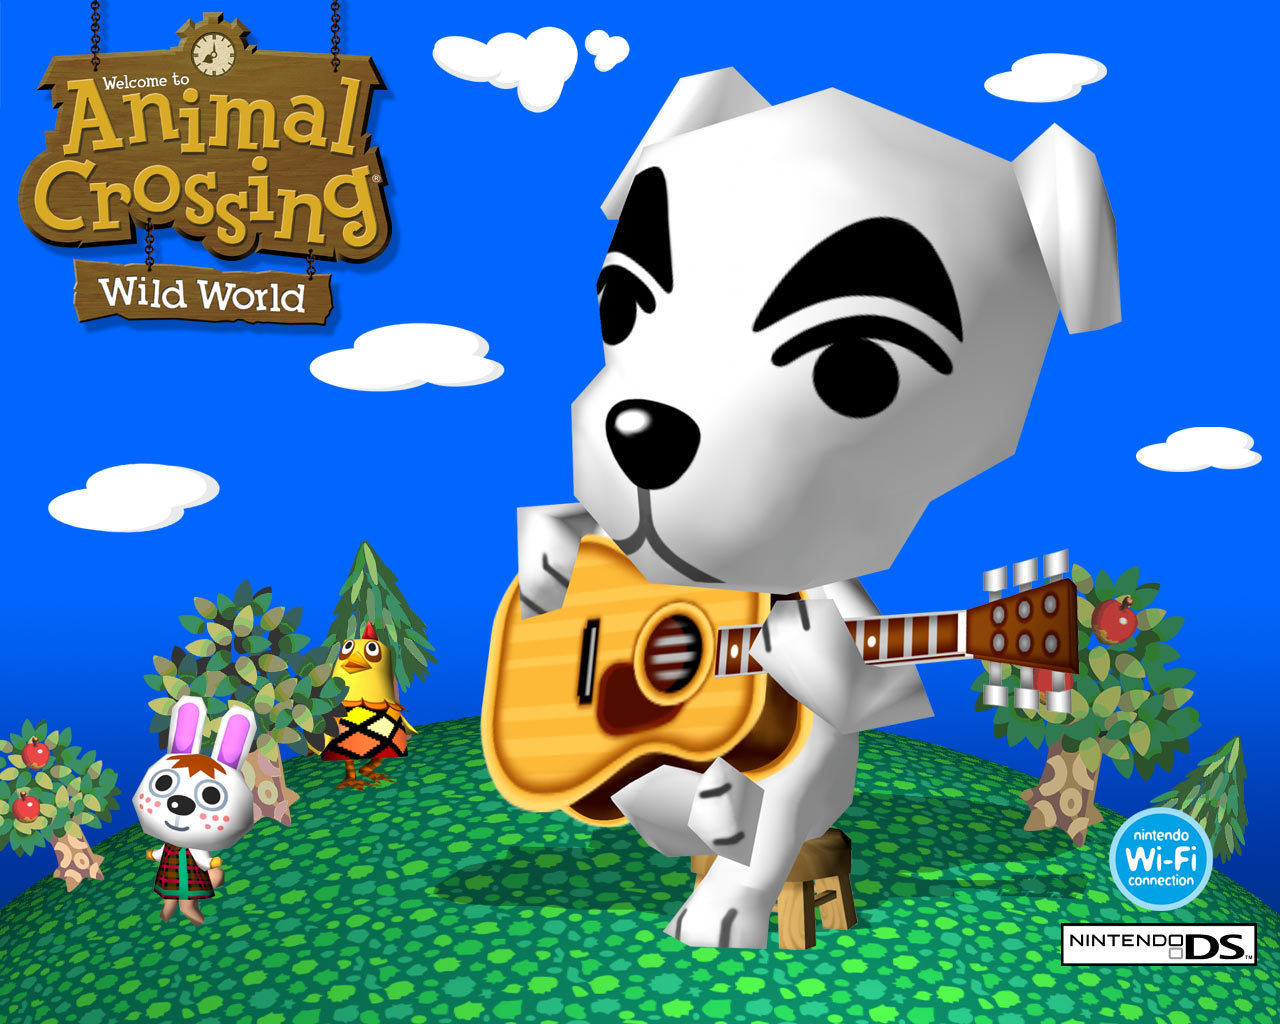 Hairstyles Animal Crossing City Folk : Hairstyles Animal Crossing City Folk On Animal Crossing City Folk ...